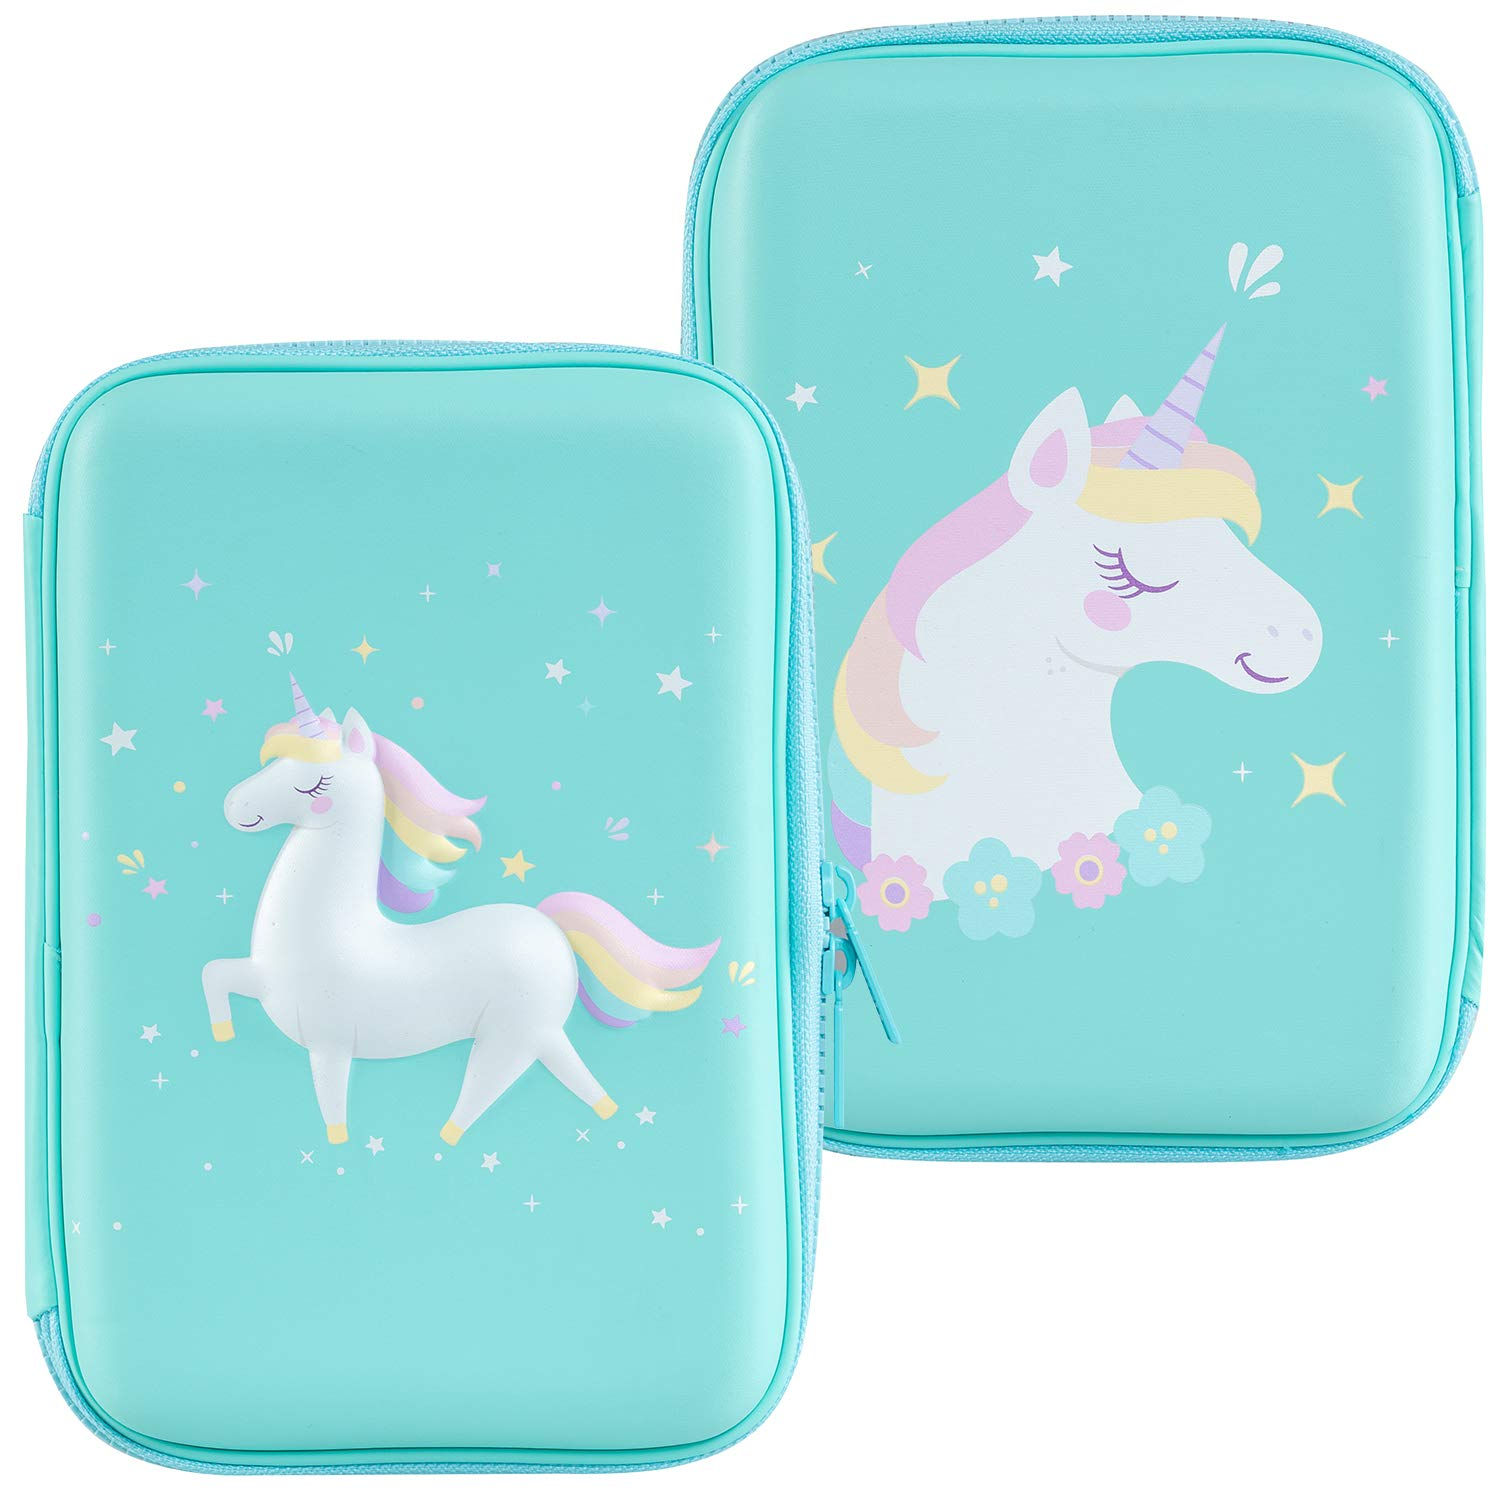 Gooji Unicorn Pencil Case for Girls (Hard Top) Magical 3D Creature, Bright Colored Storage Box | Compact and Portable Home, Classroom, Art Use | for Markers, Pens, Colored Pencils (Blue)